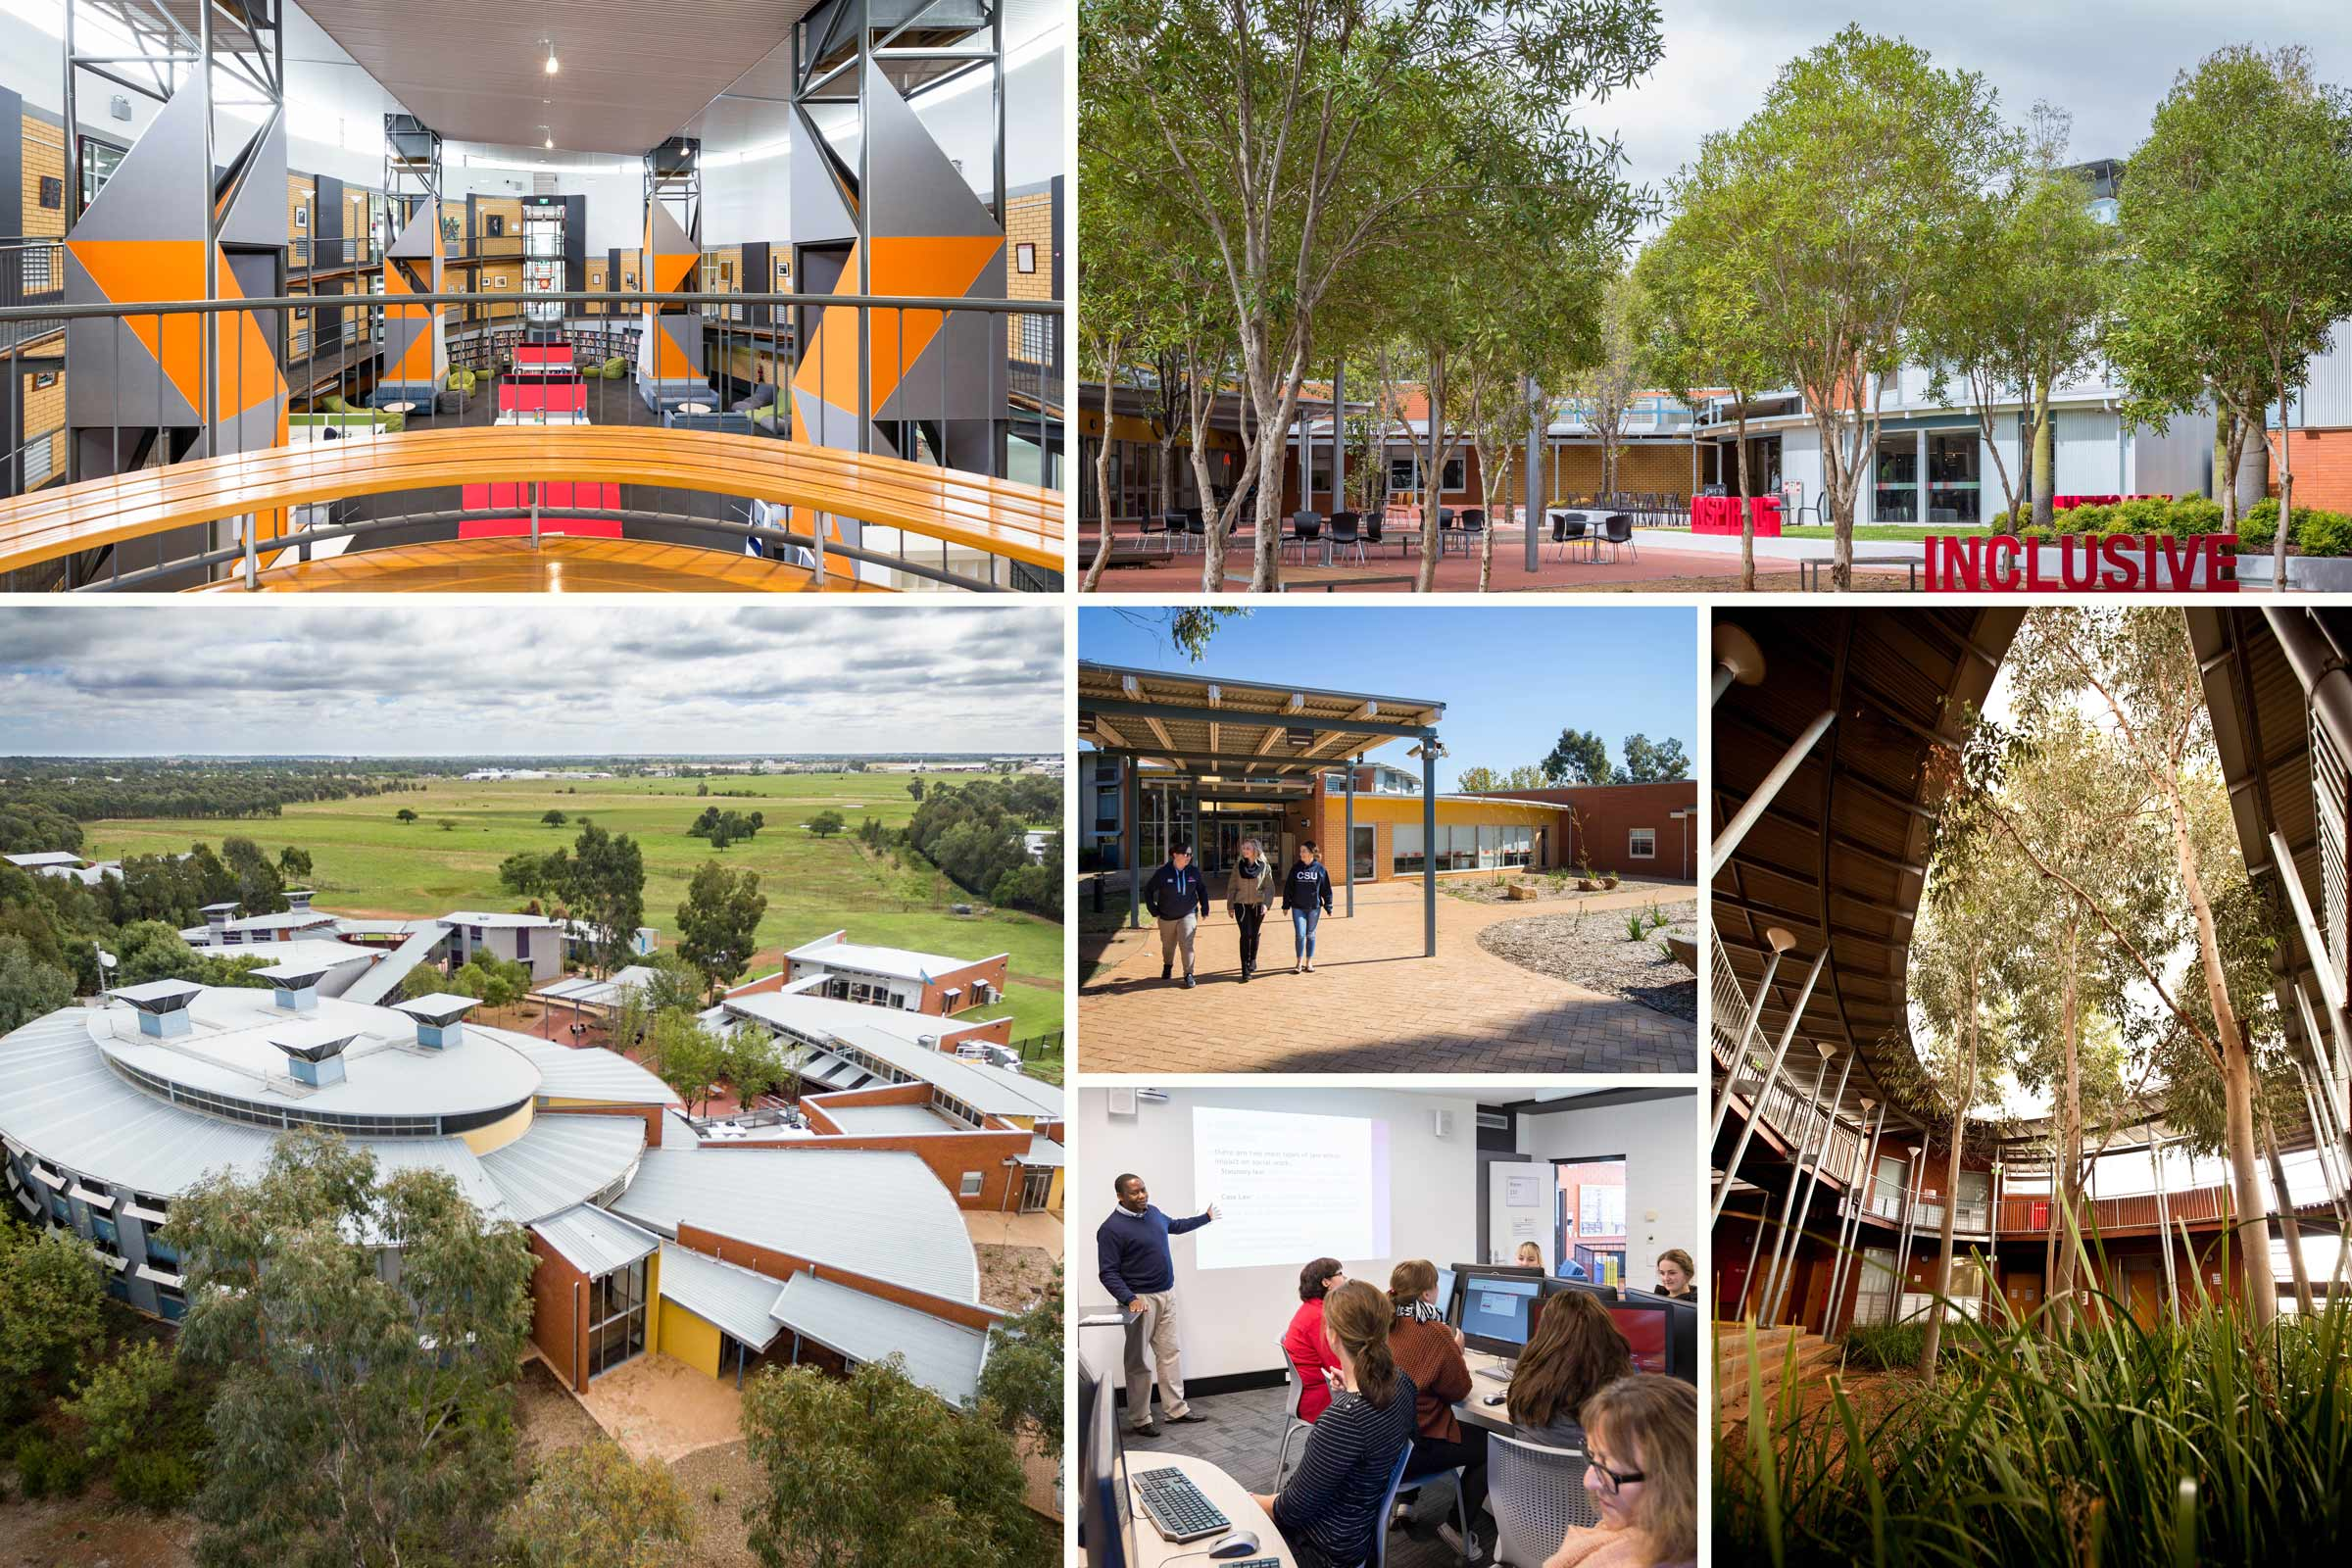 Charles Sturt University facilities collage of Dubbo